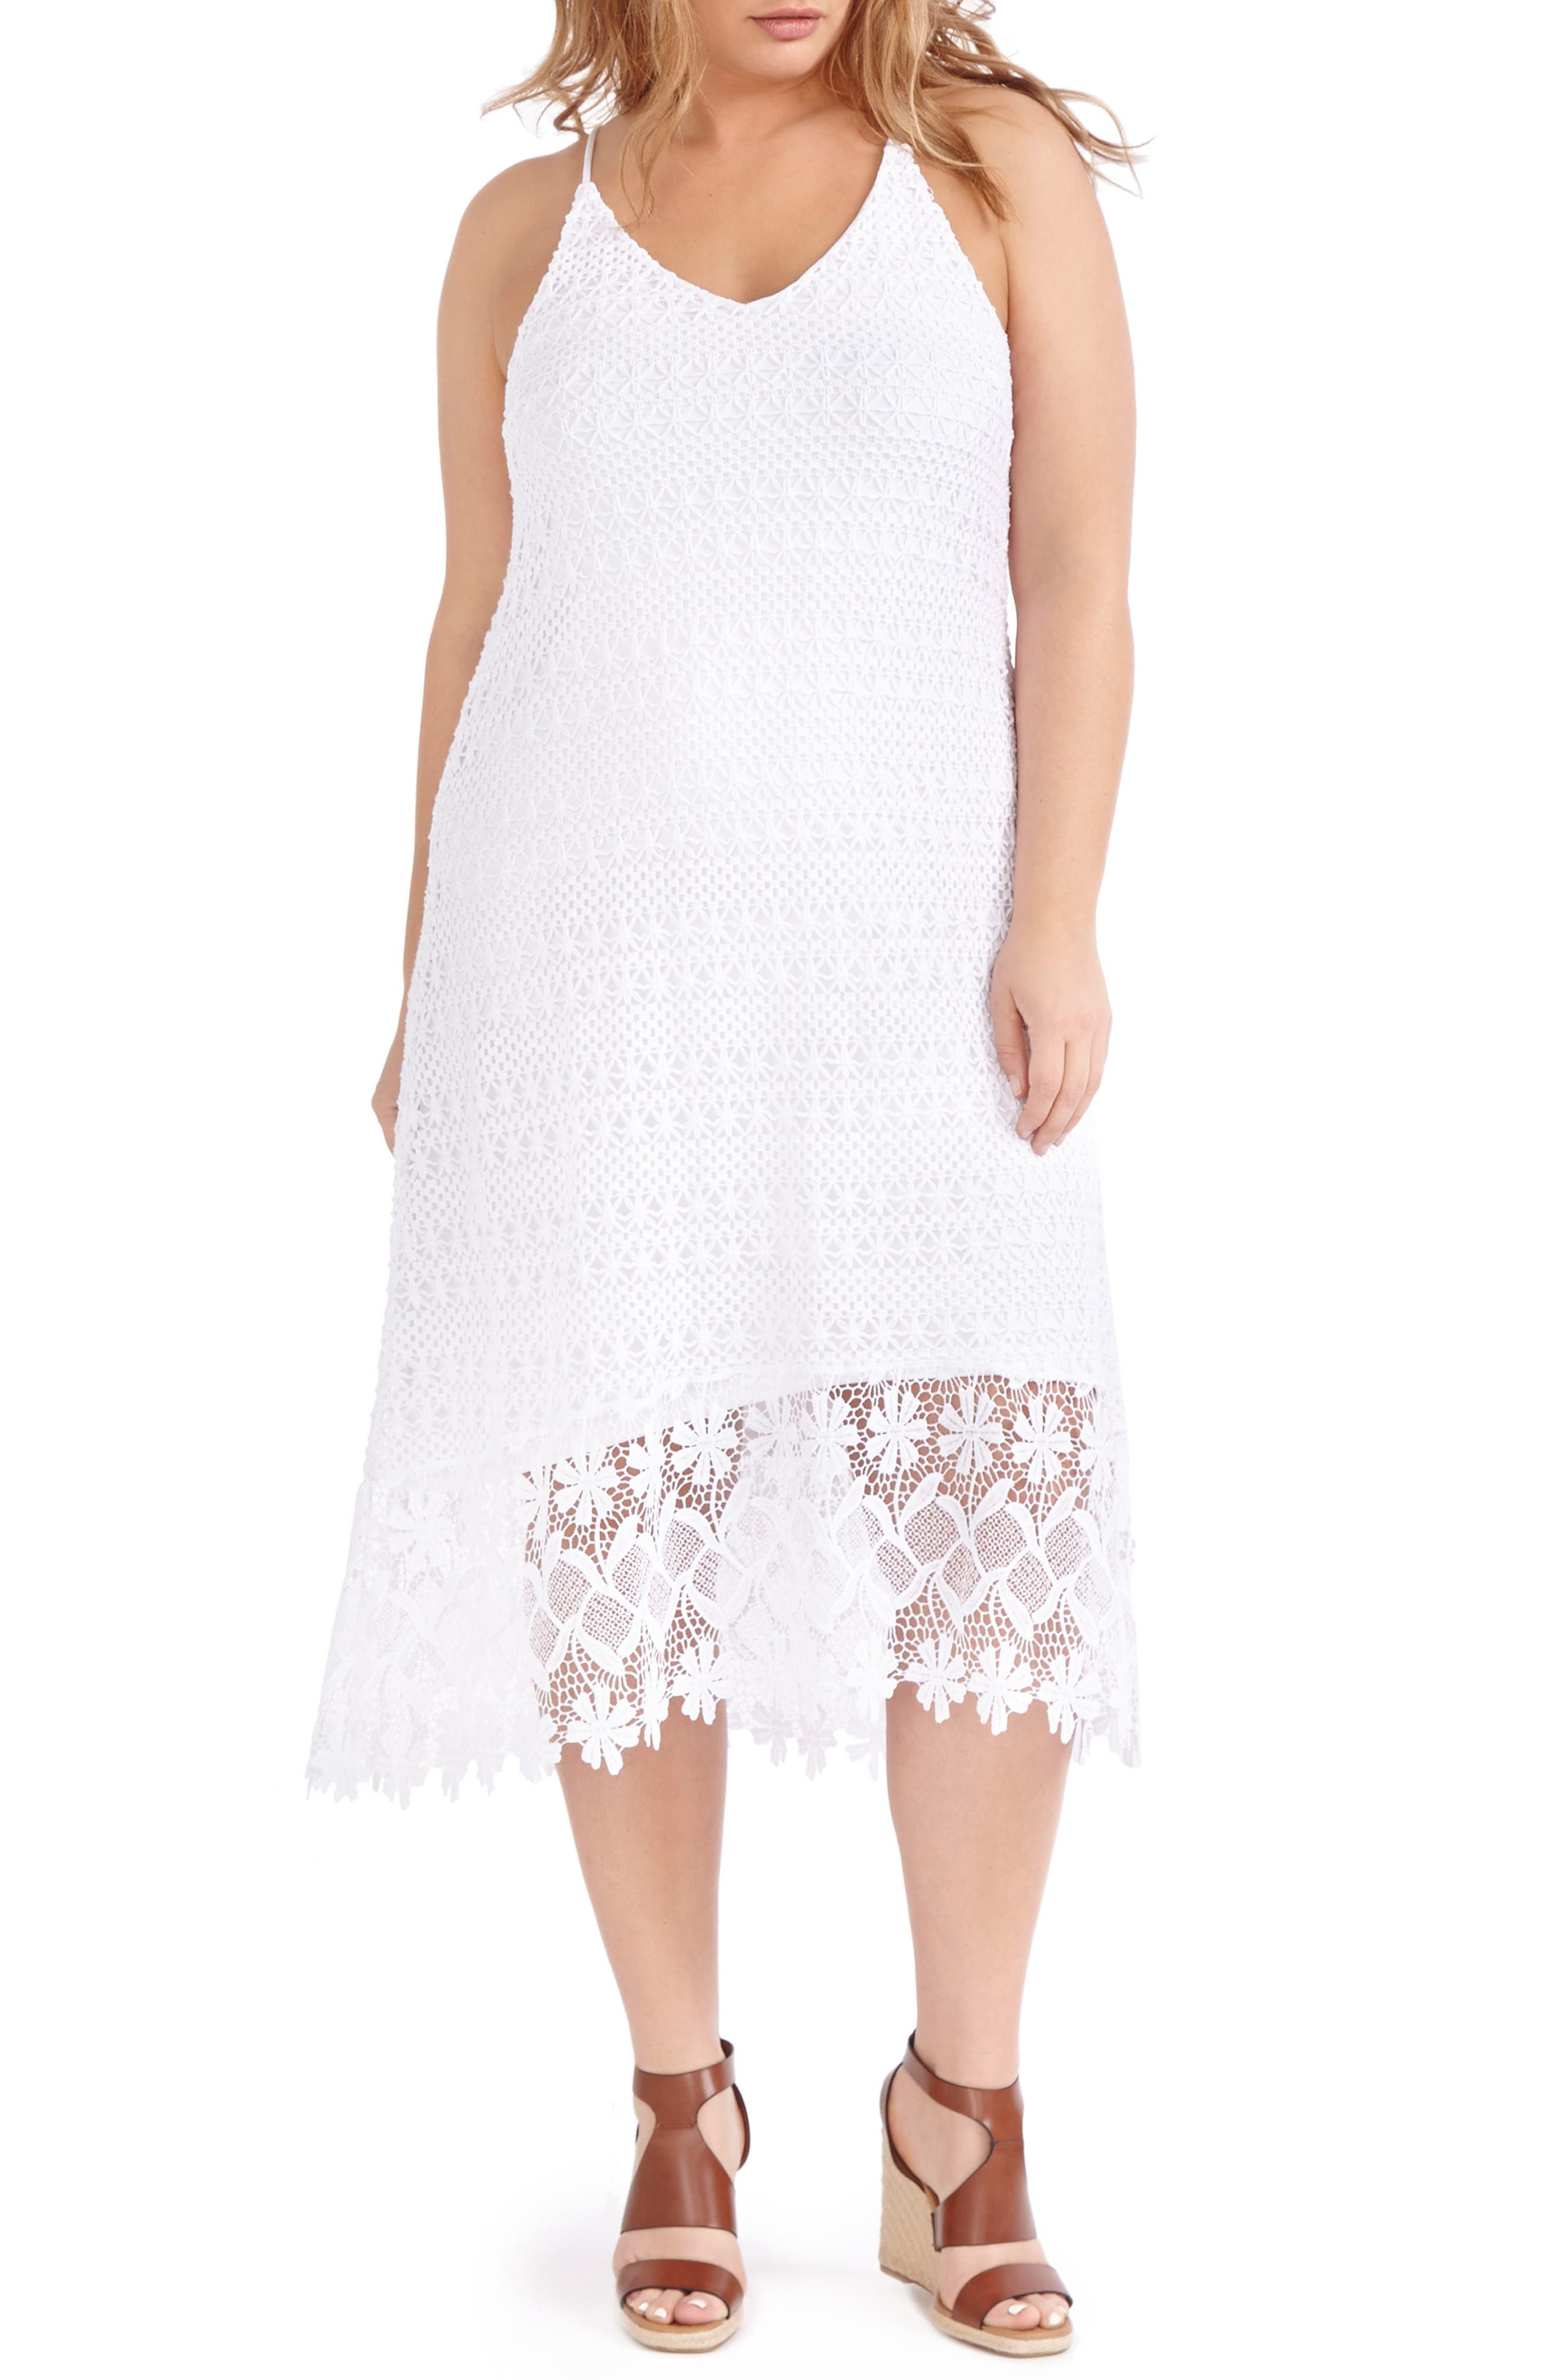 ADDITION ELLE LOVE AND LEGEND High/Low Lace Slipdress (Plus SIze)